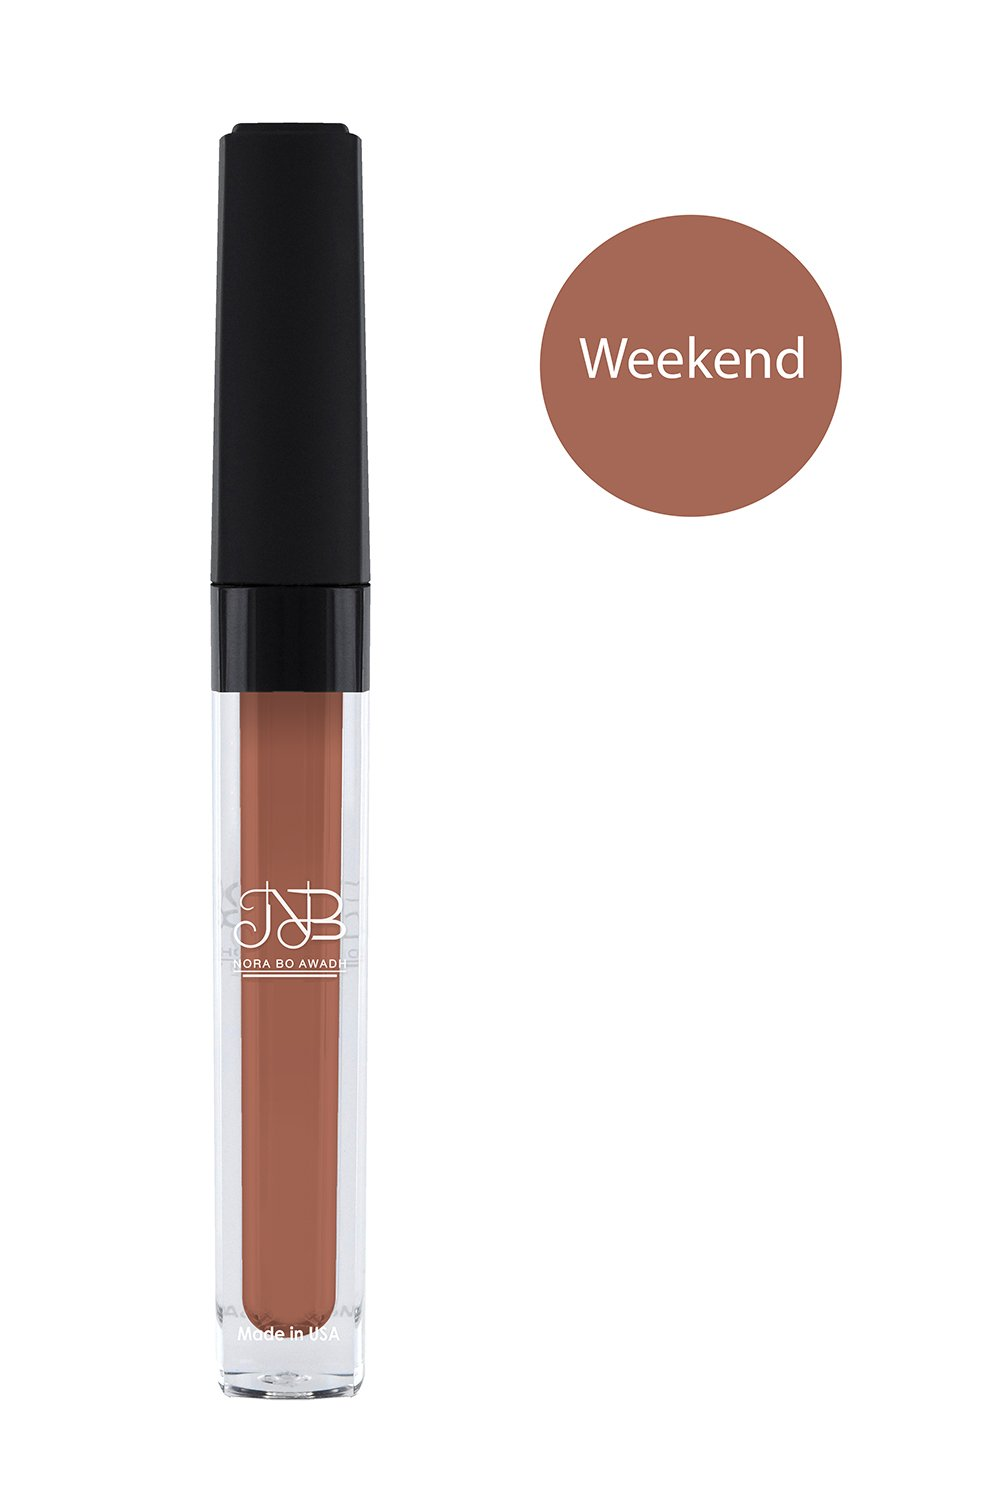 Liquid Lipstick - Weekend